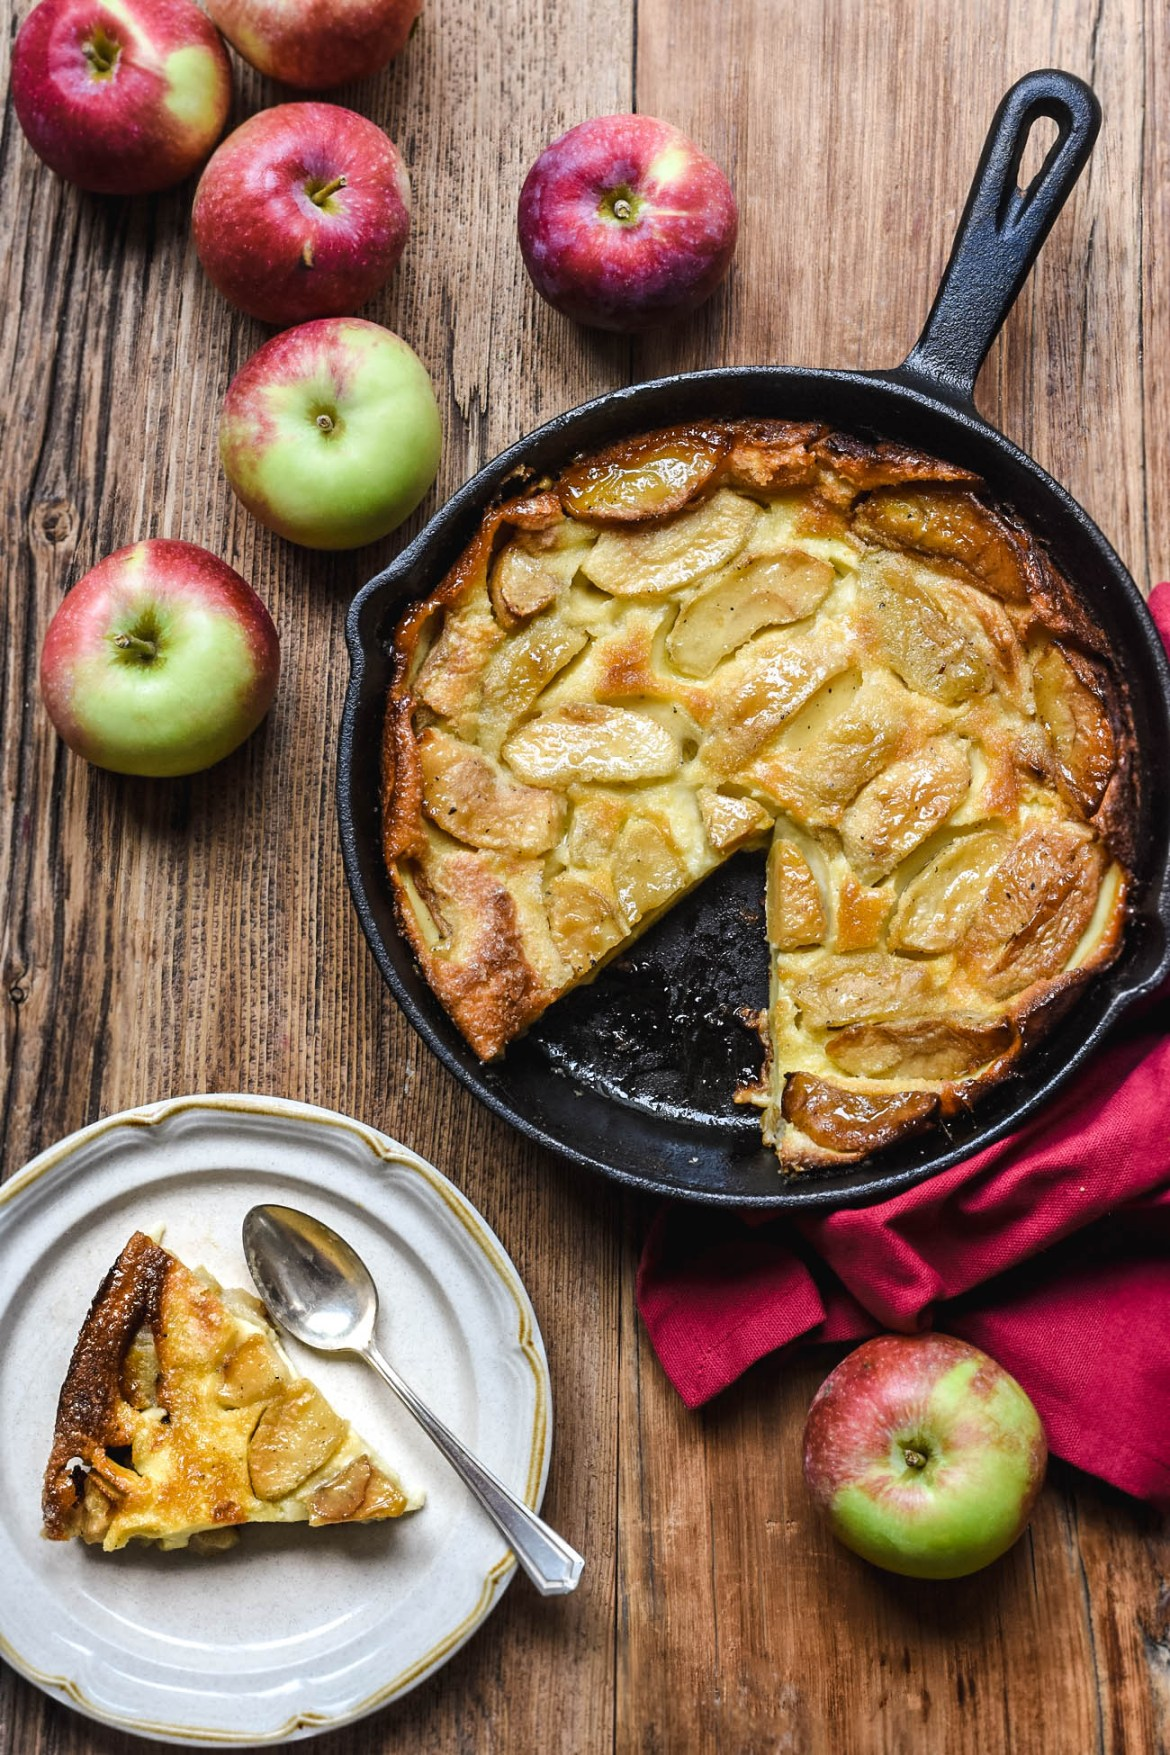 Skillet Caramelized Apple Cake From Brittany Pardon Your French